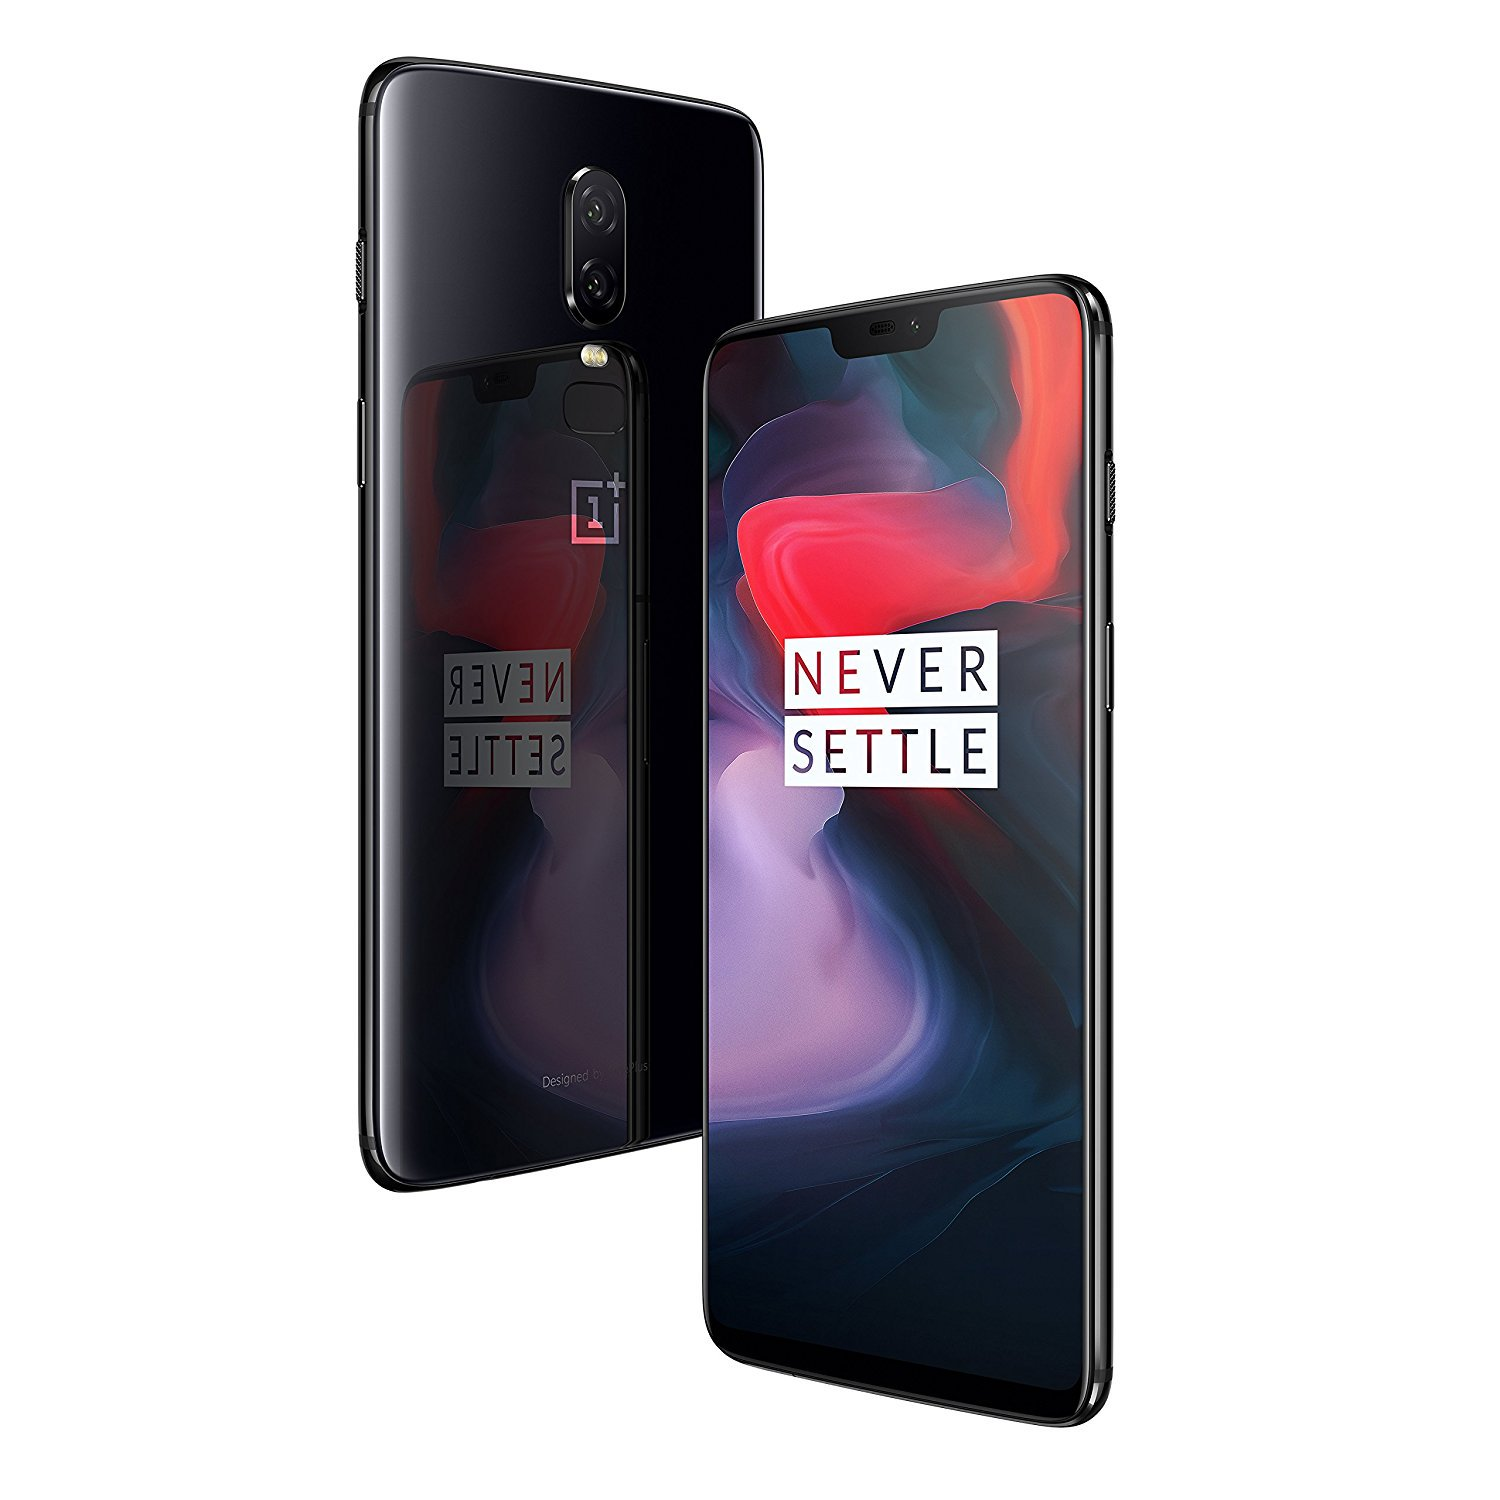 Amazon Listing reveals everything about the OnePlus 6 1